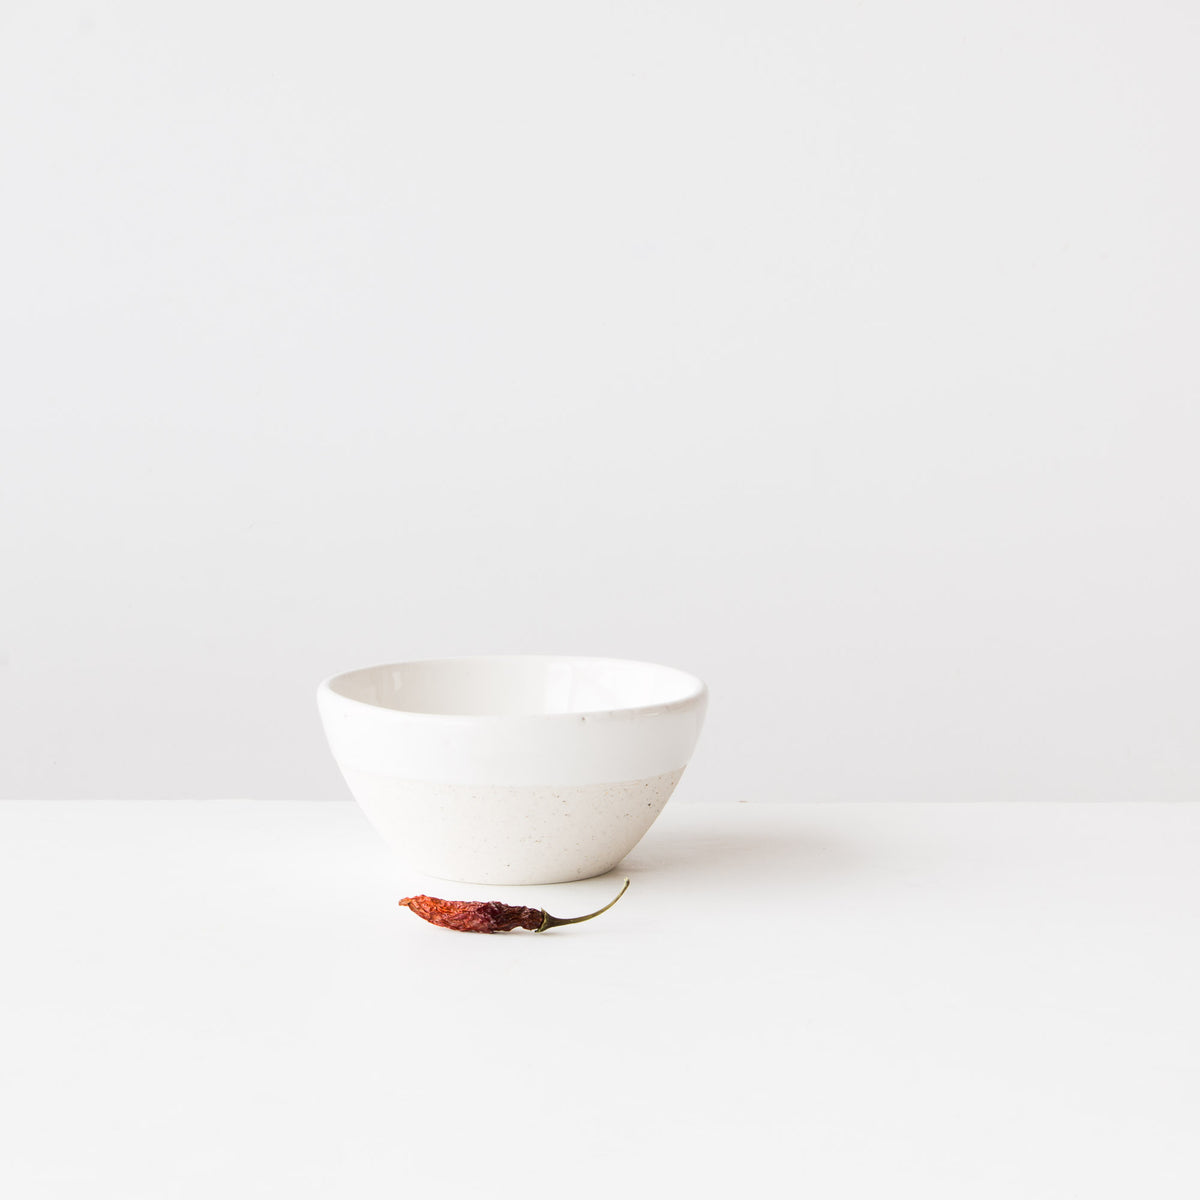 Oatmeal Clay - Soft White Glaze. - Hand-Thrown Small Pottery Soup Bowl - Sold by Chic & Basta